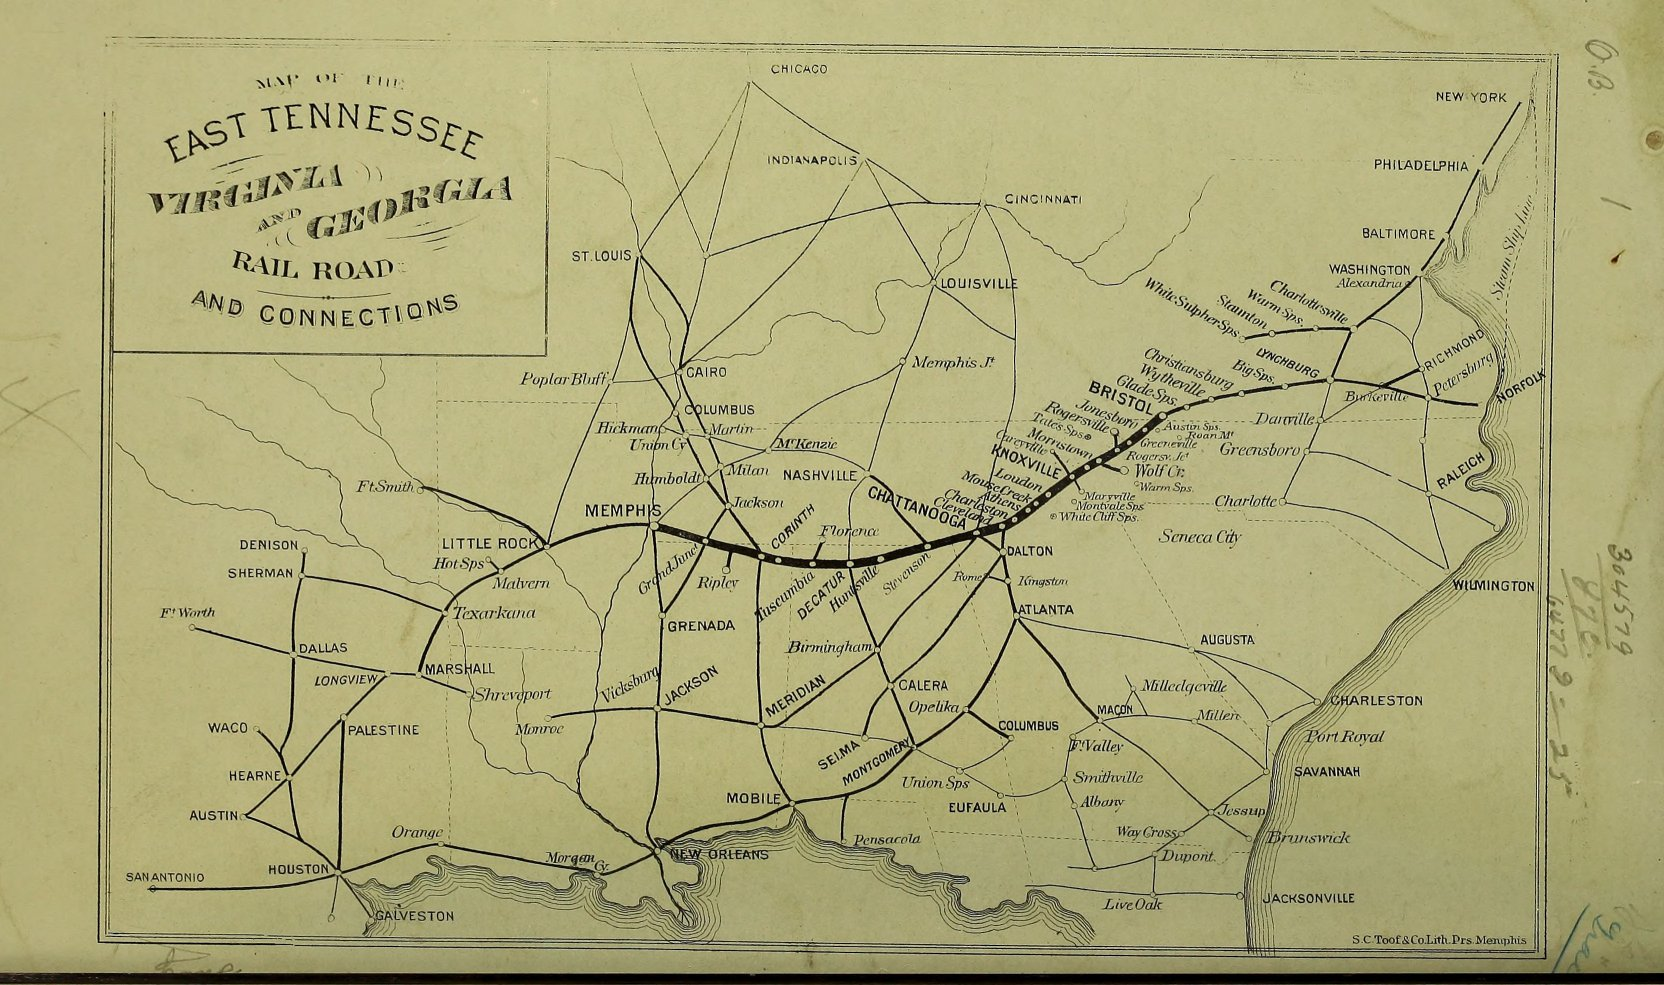 Map Of The East Tennessee, Virginia And Georgia Railroad And Connections  From East Tennessee, Virginia And Georgia Railroadpany